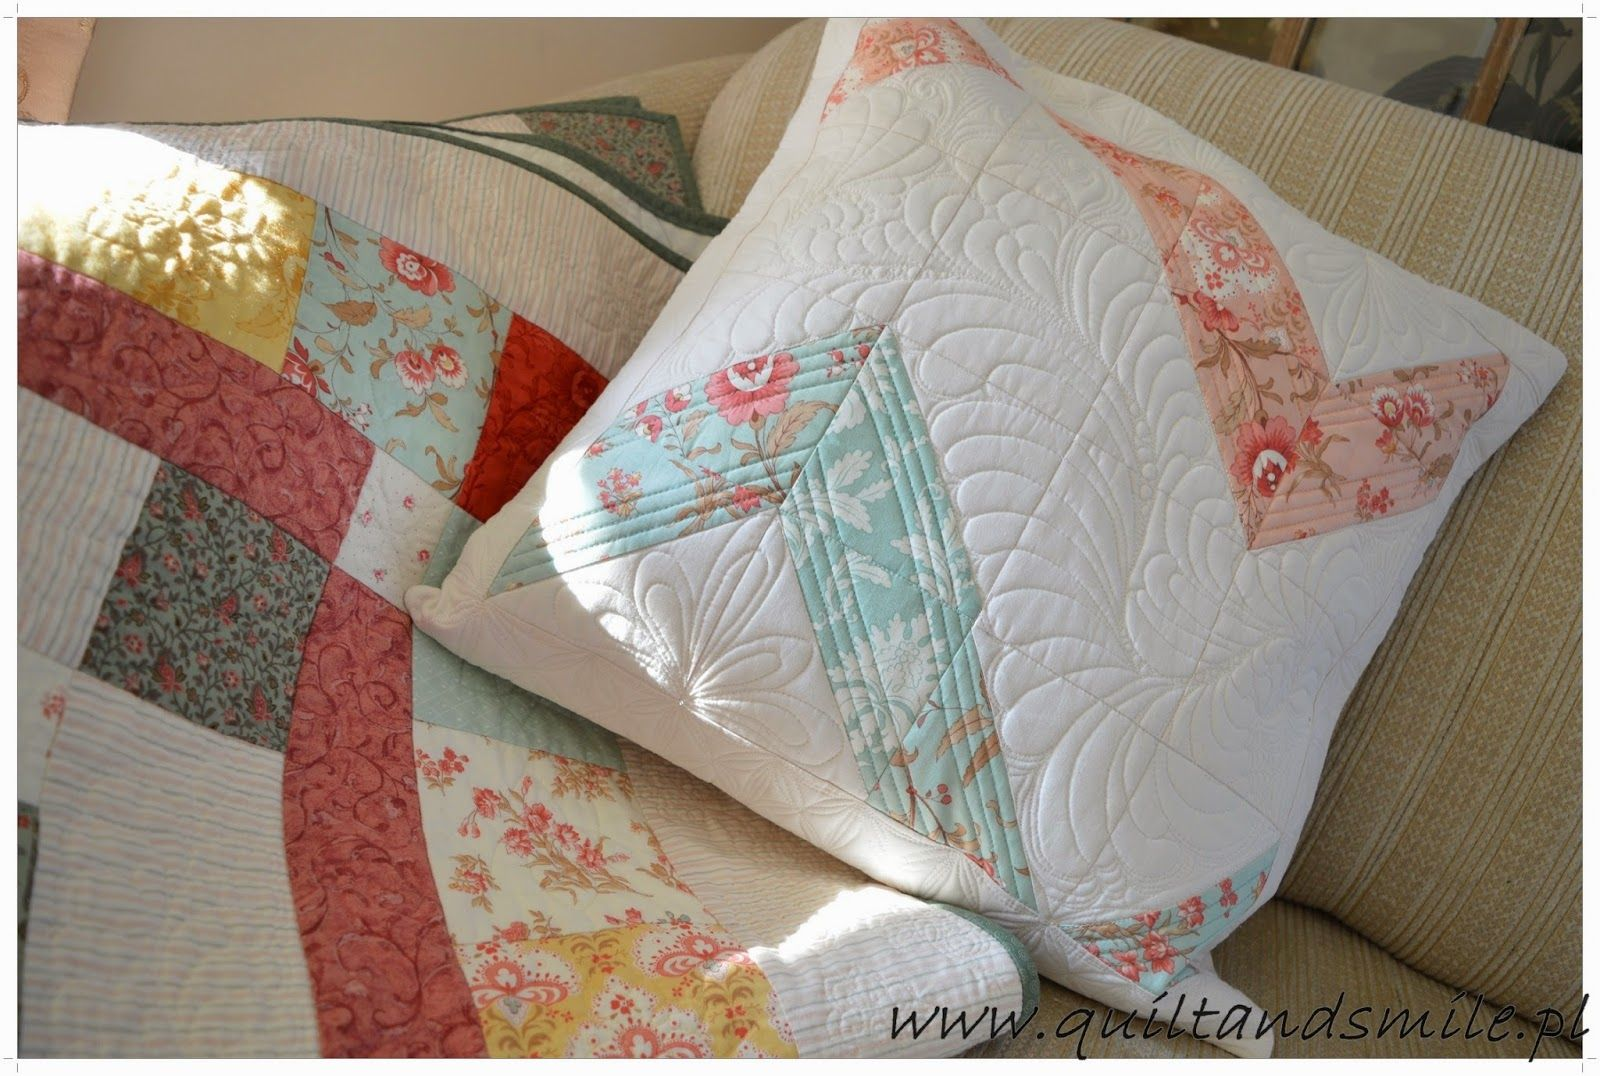 Quilt and Smile: Freecom is at Darlene Motion Challenge - February